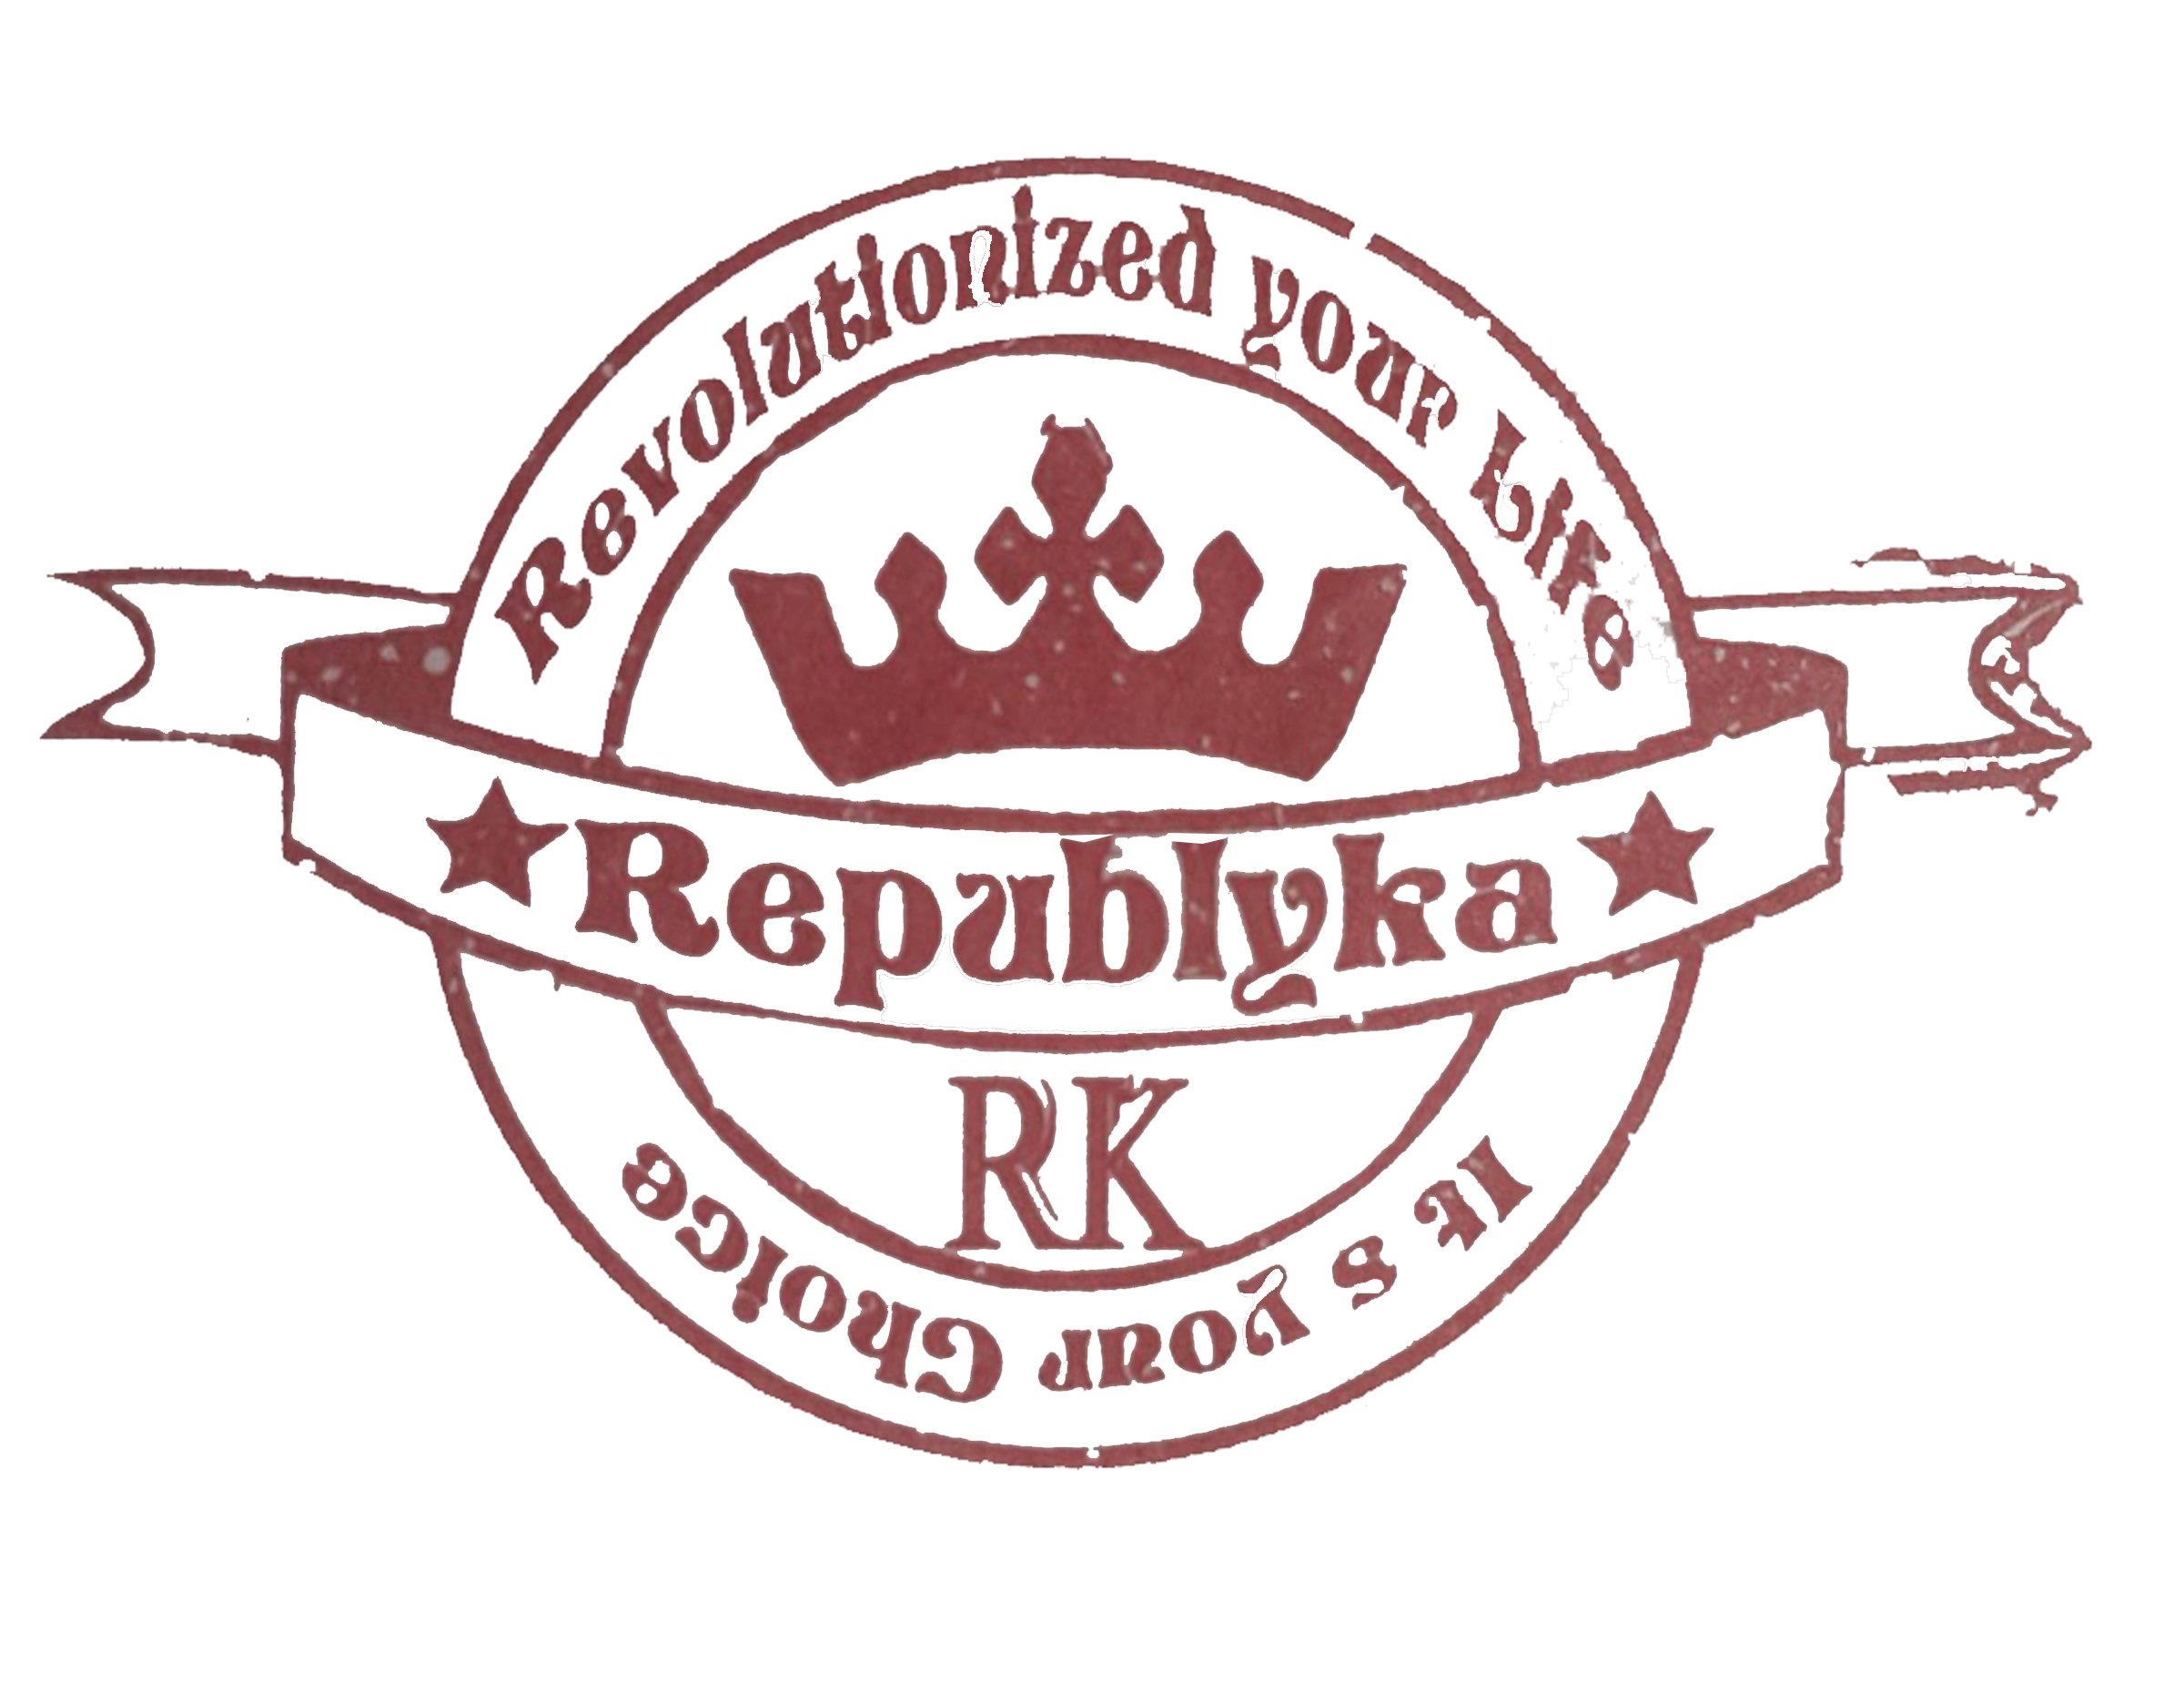 Republyka